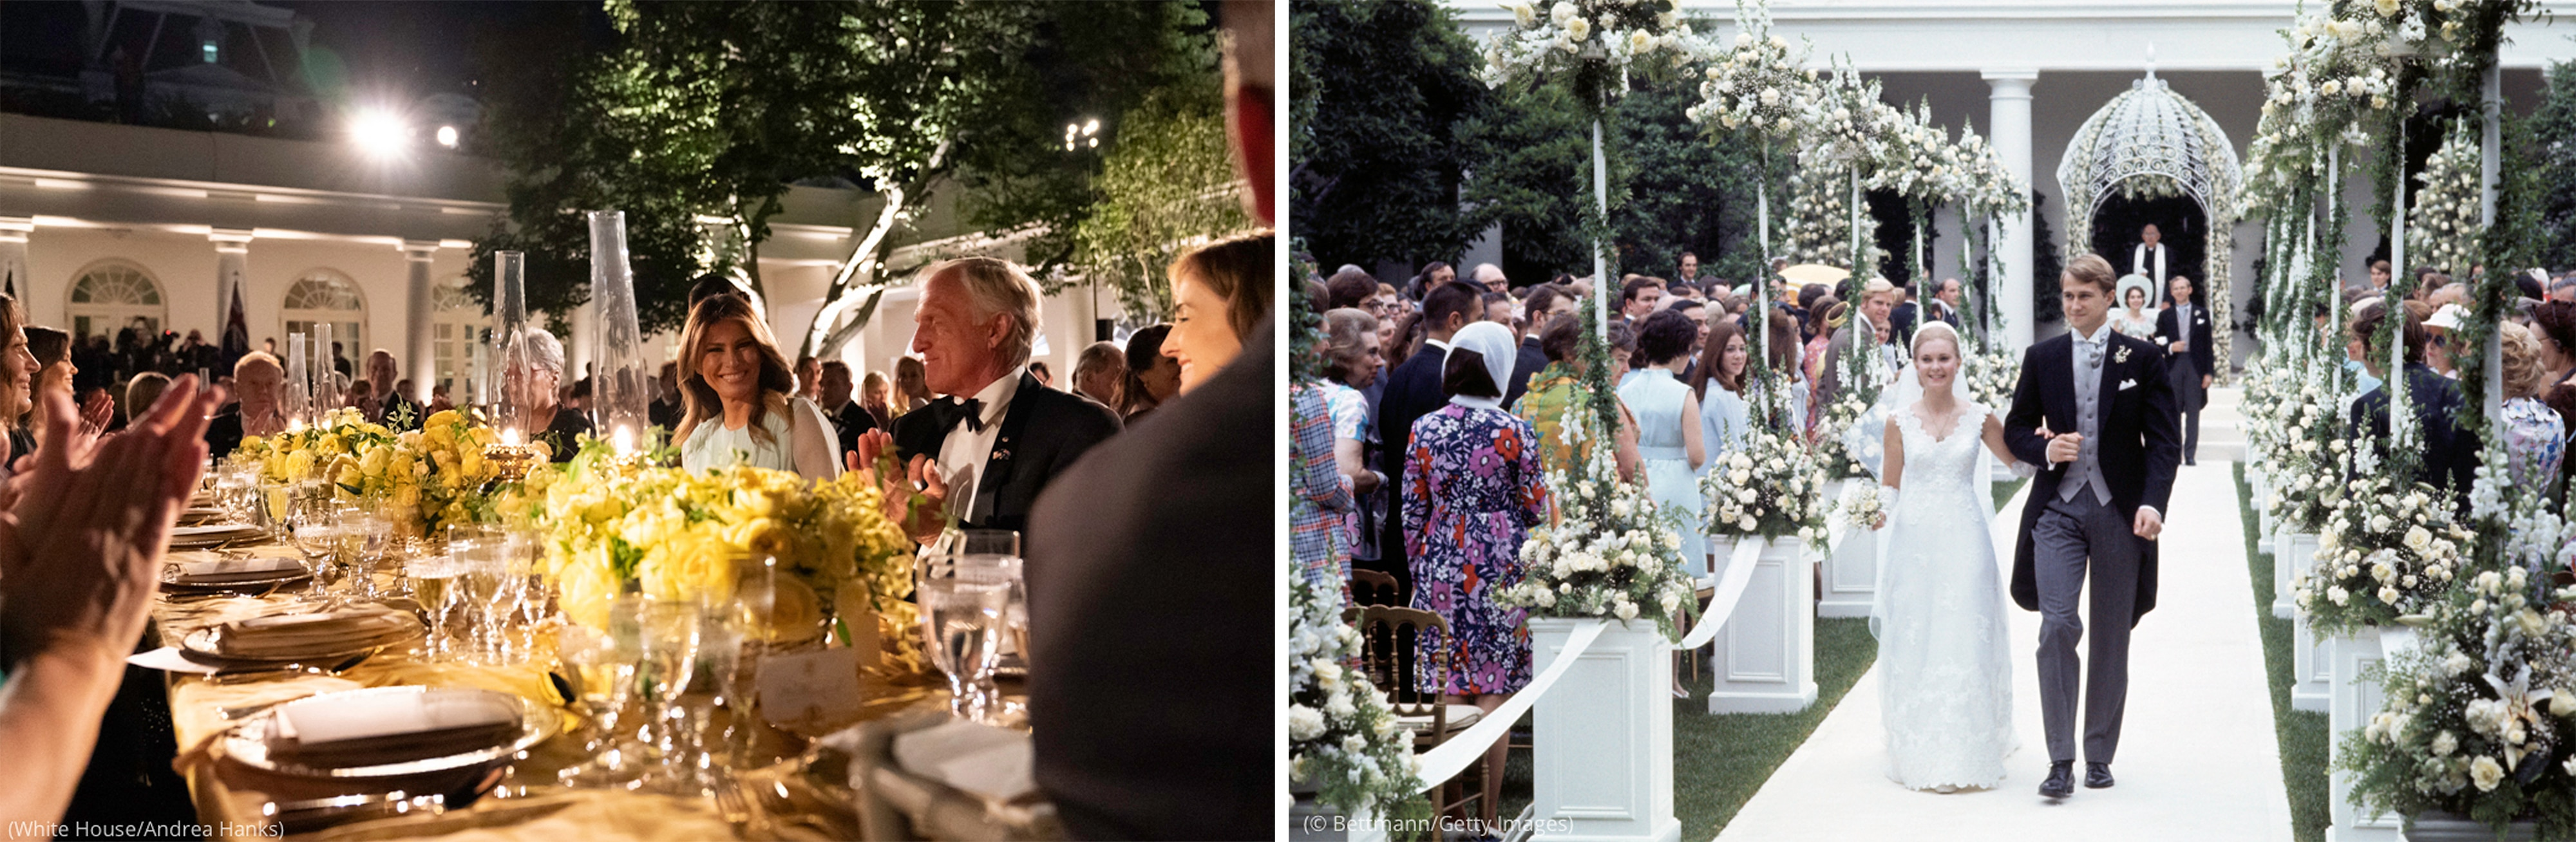 Two photos: People seated at long dinner table (White House/Andrea Hanks) and wedded couple walking down aisle (© Bettmann/Getty Images)